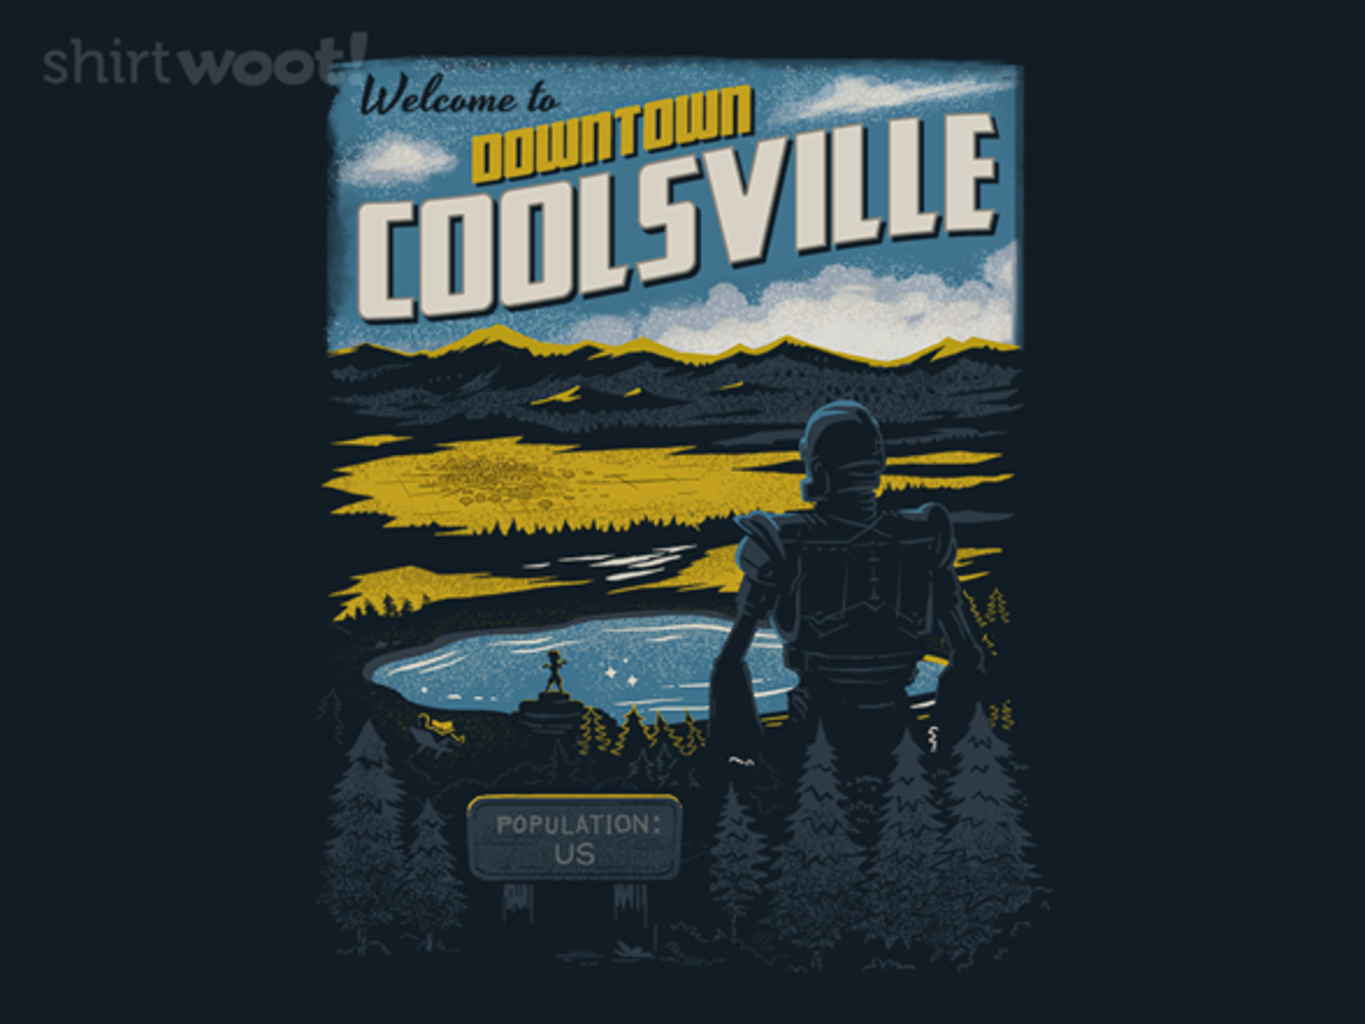 Woot!: Welcome to Downtown Coolsville